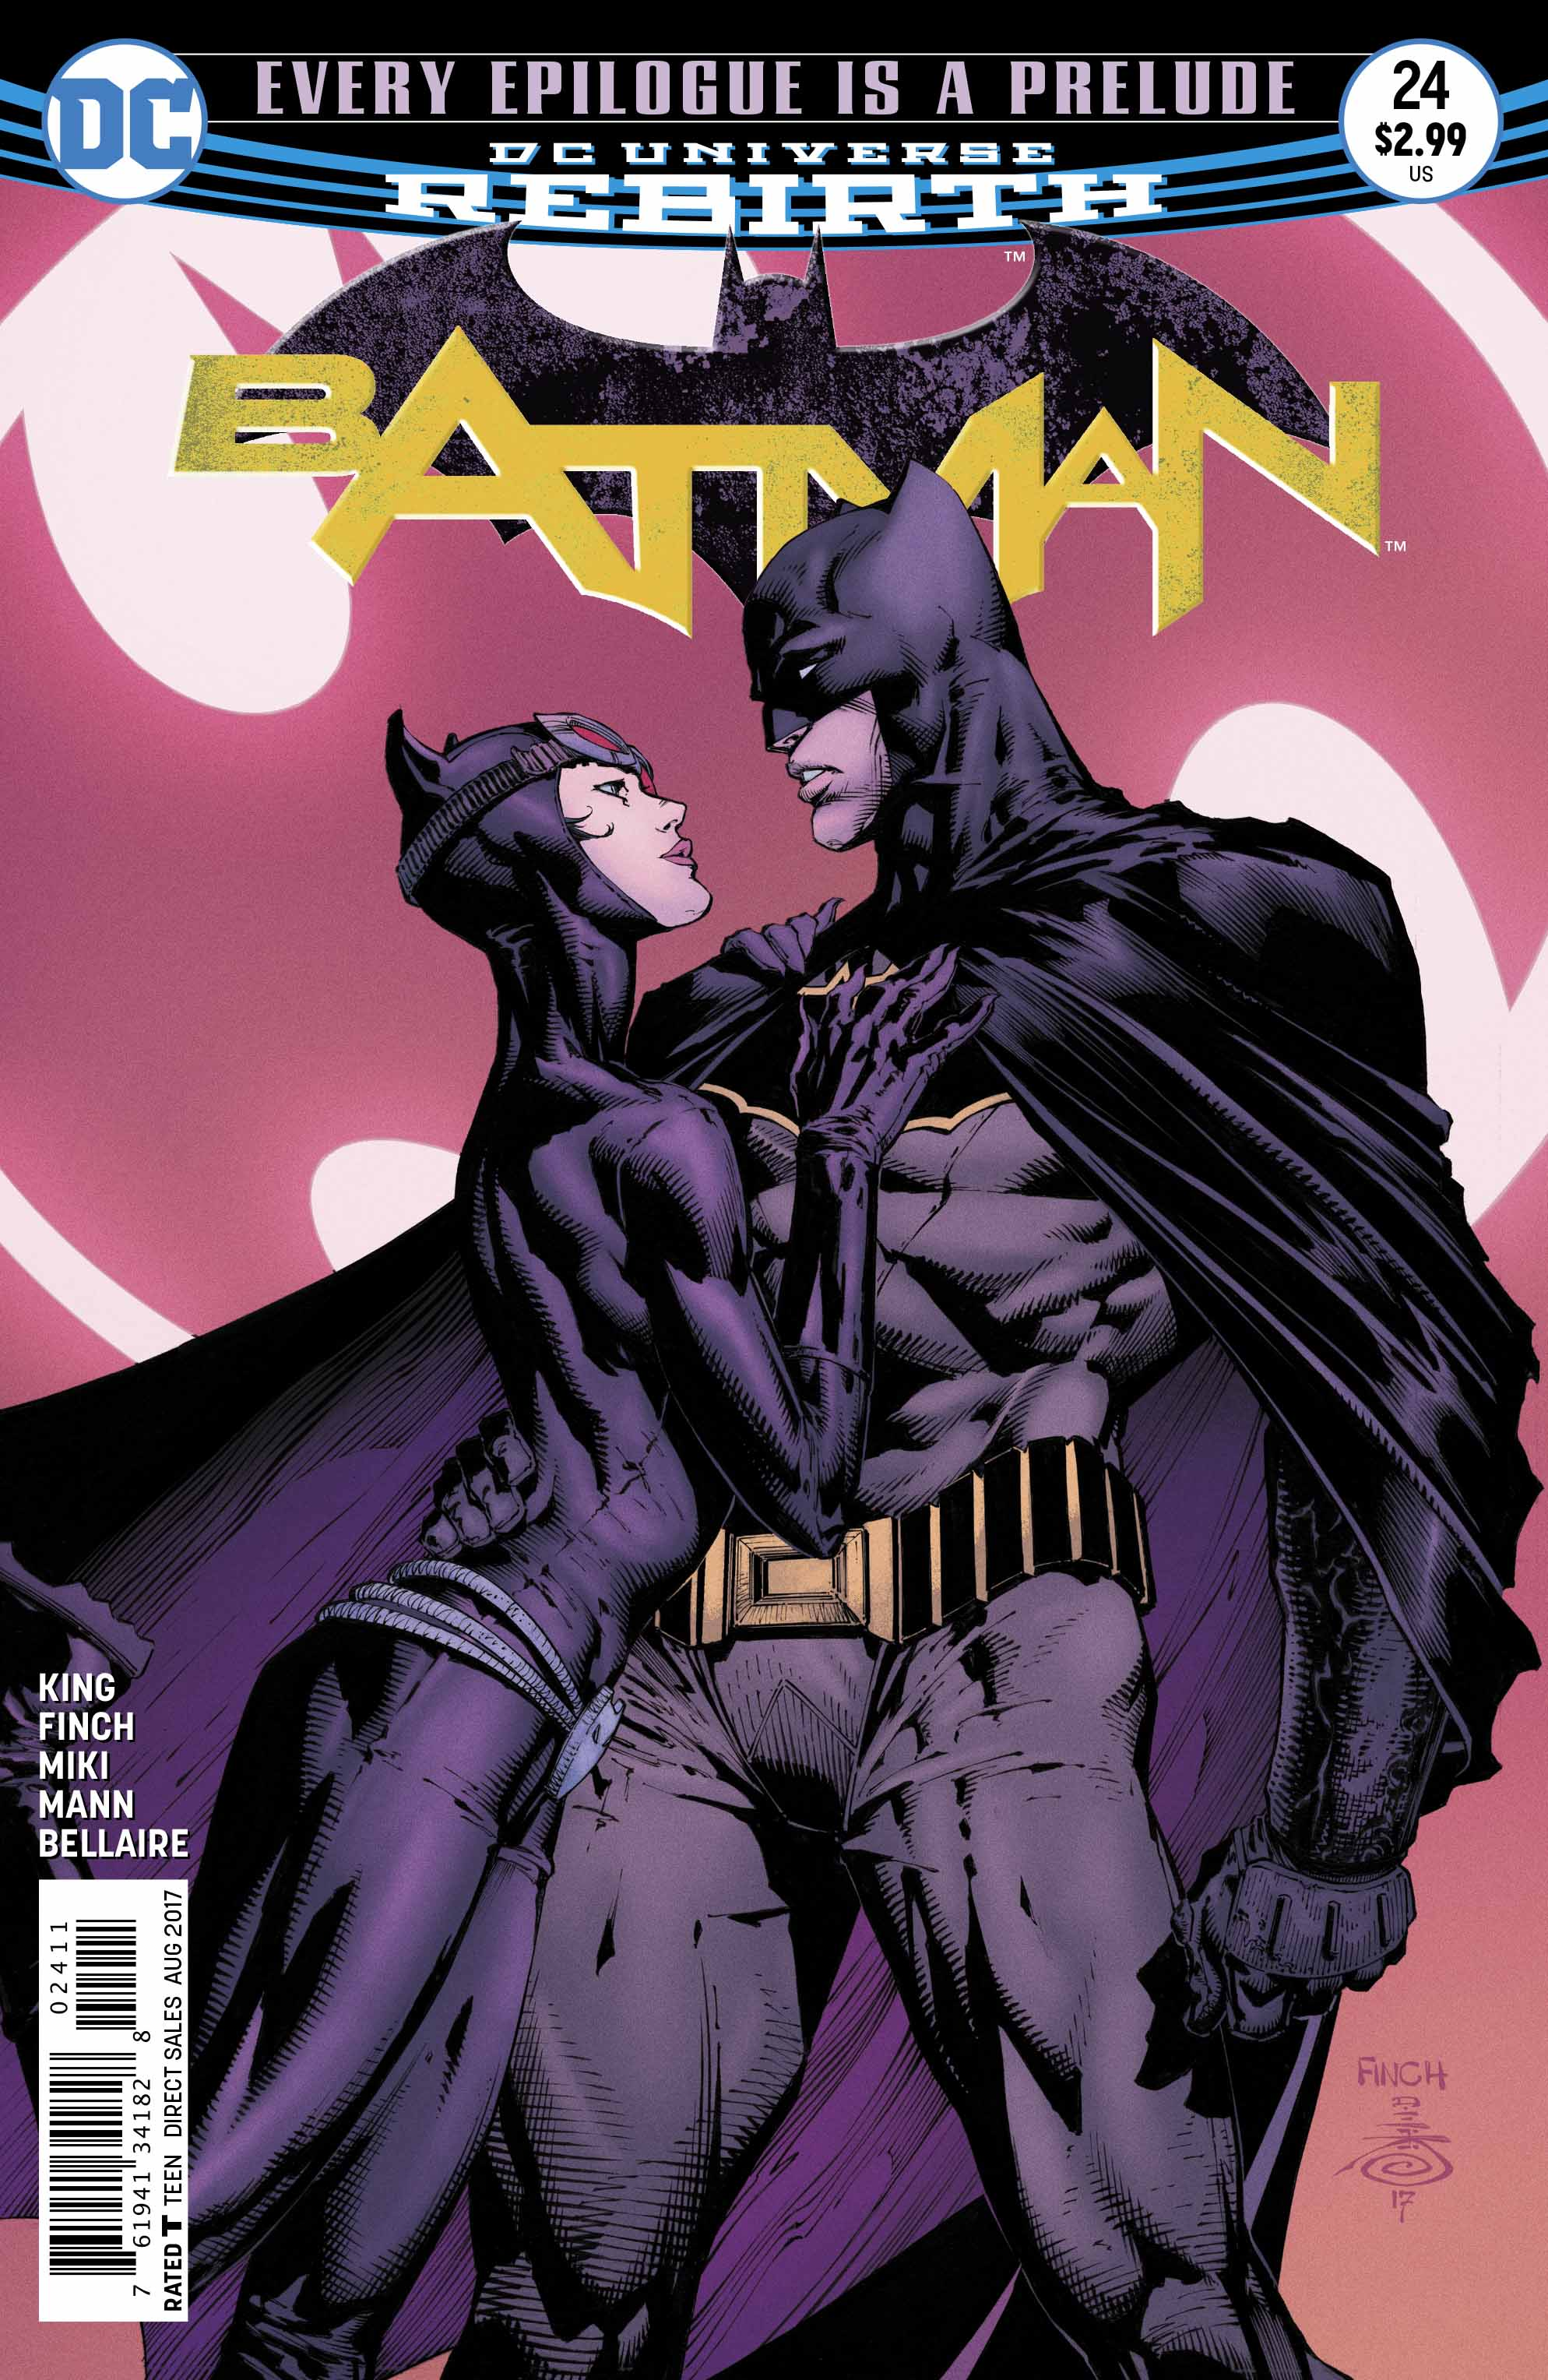 BATMAN #24 Changes Everything!